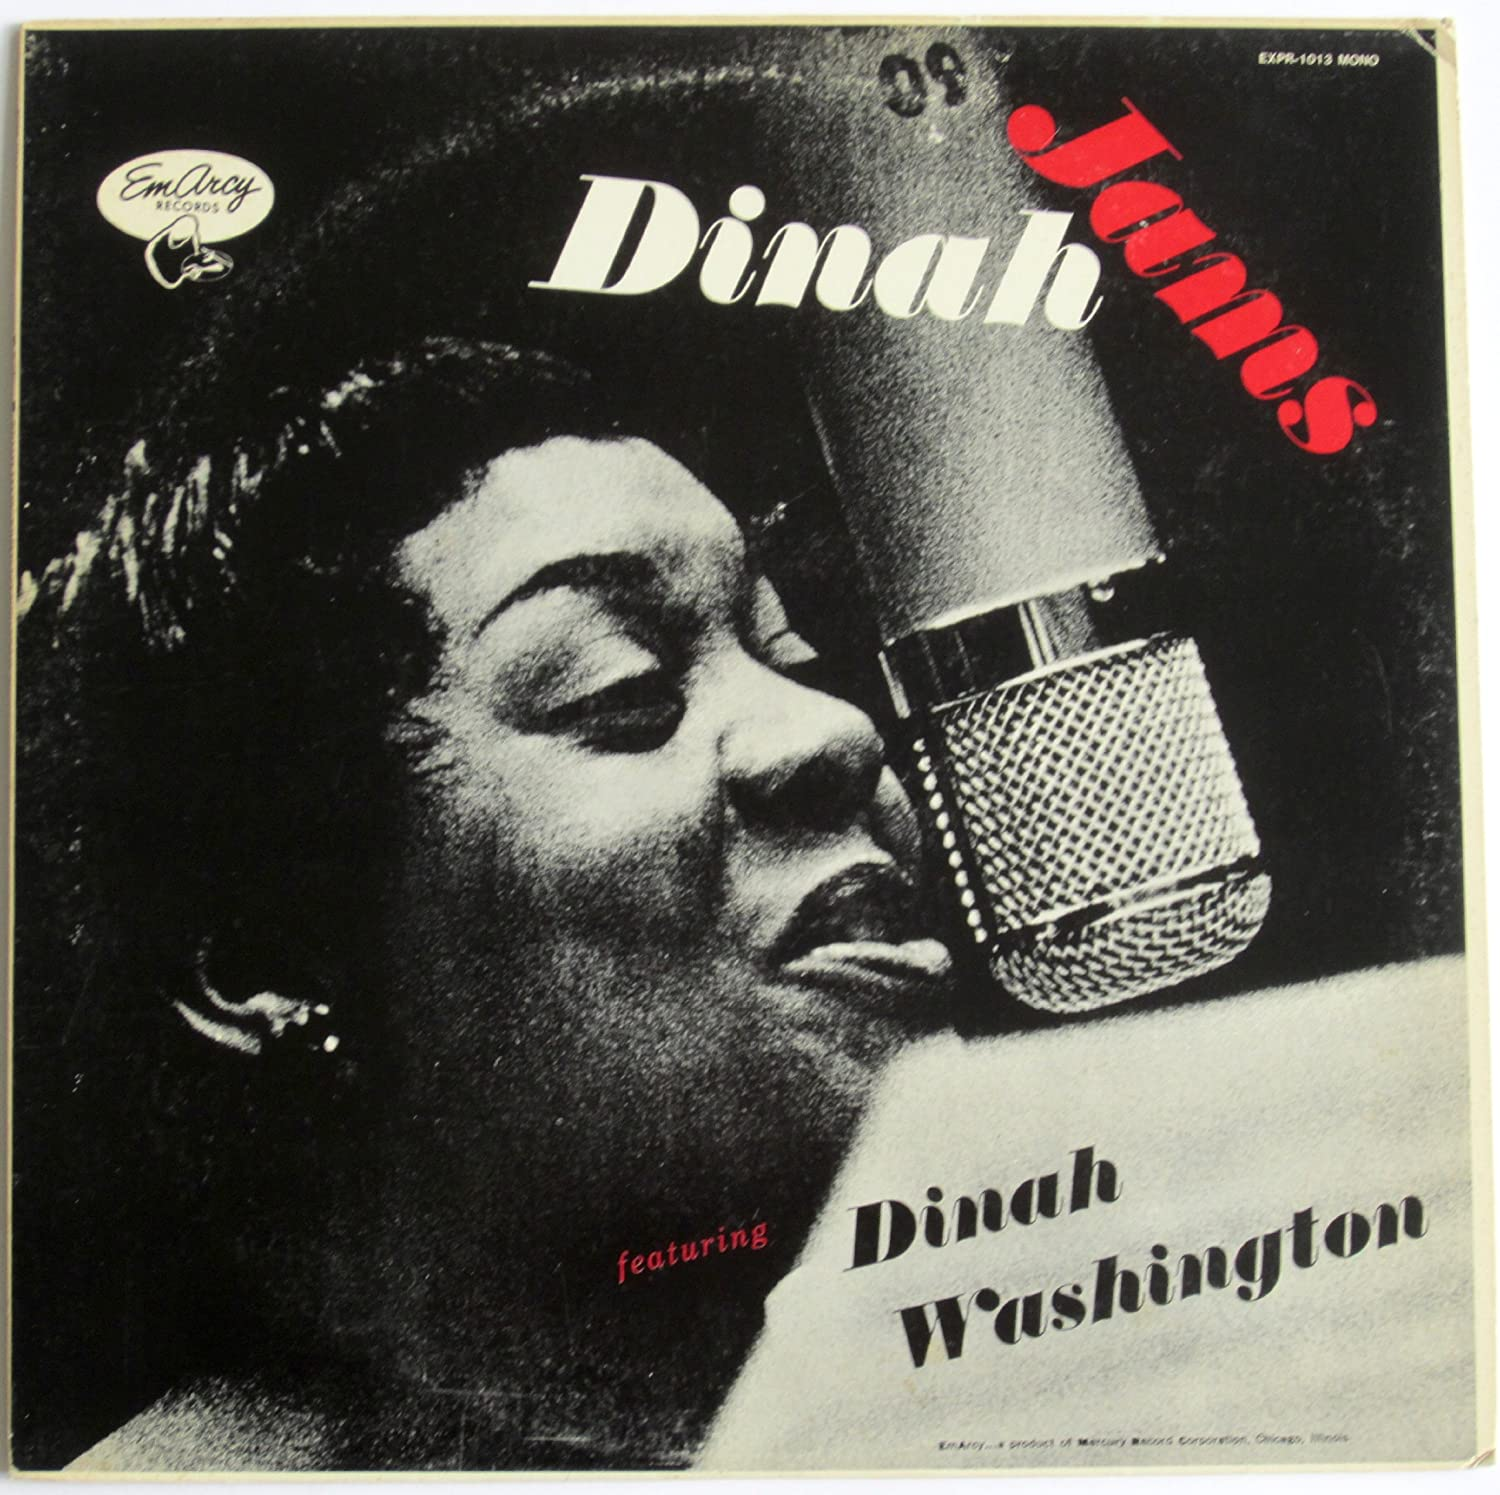 Dinah Washington - Dinah Jams - Amazon.com Music